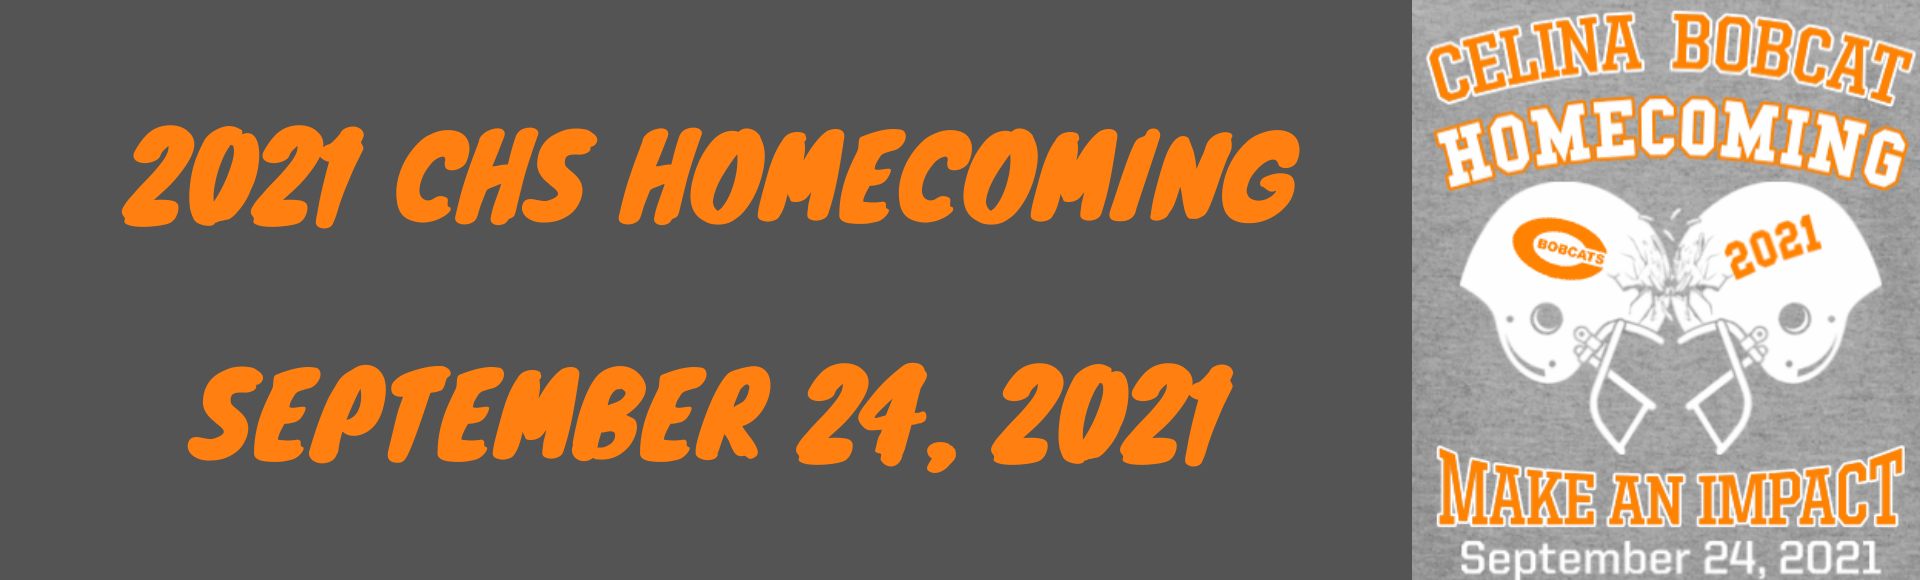 CHS HOMECOMING INFORMATION